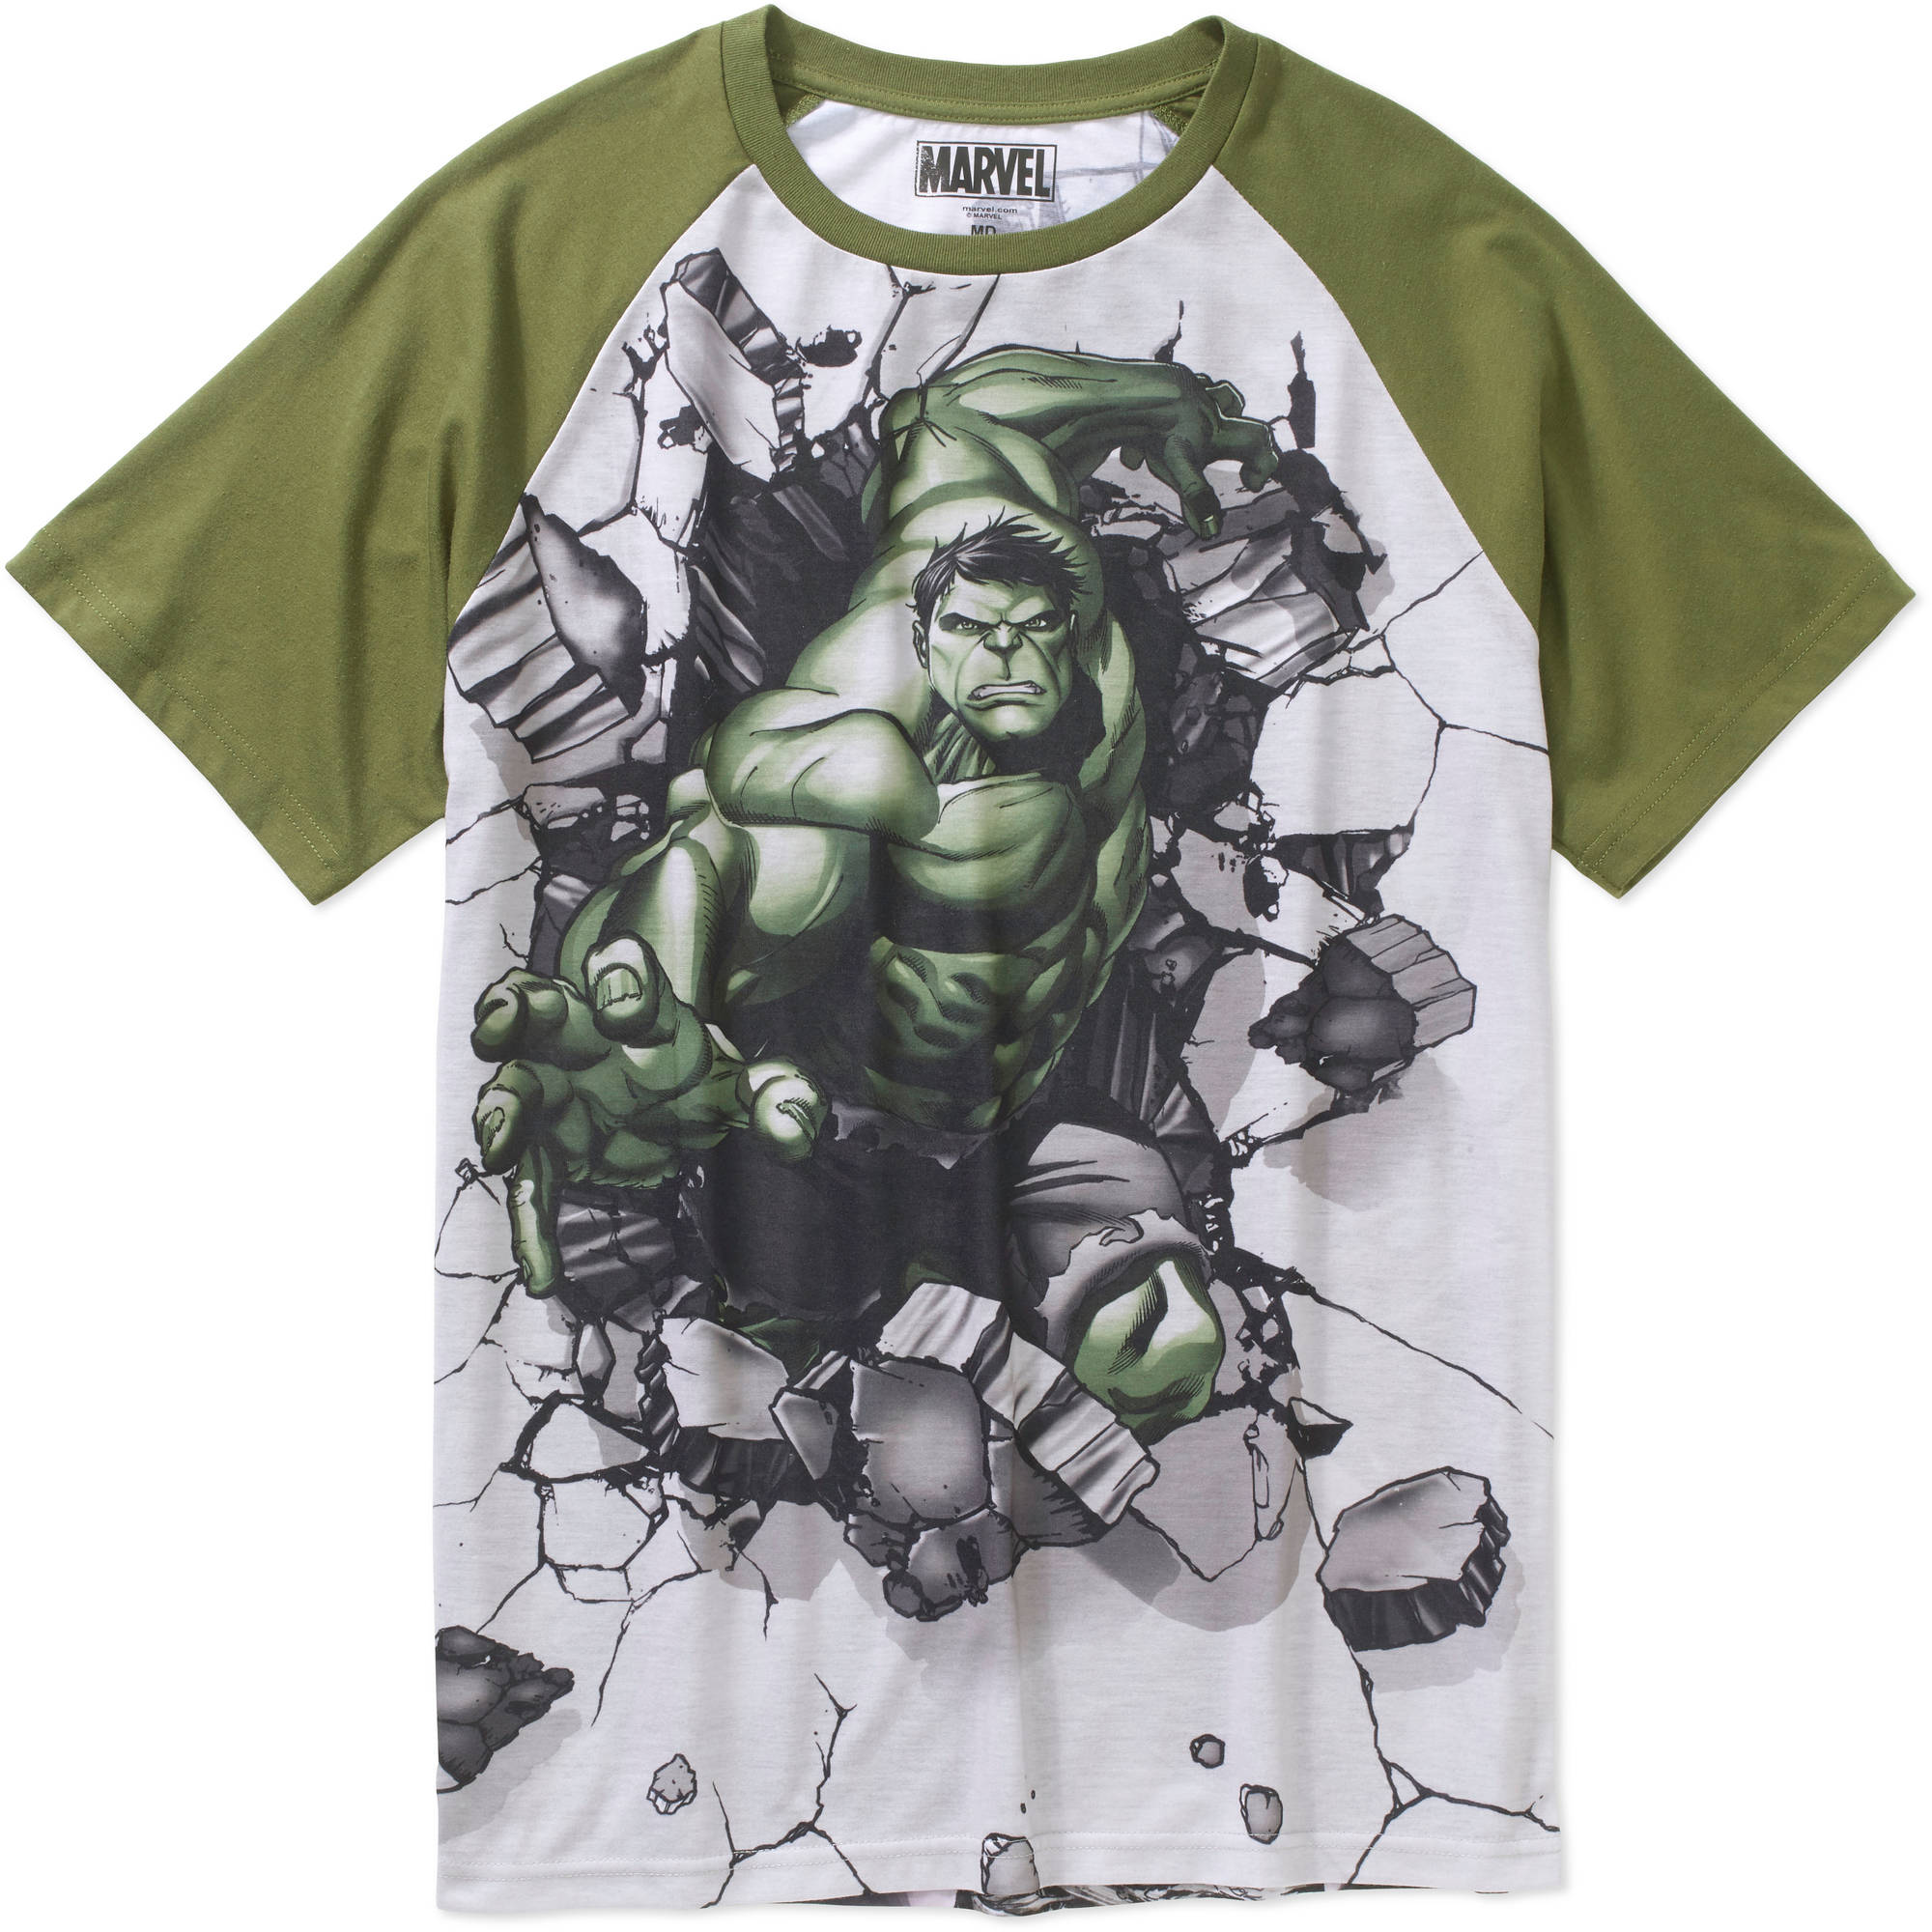 Marvel Hulk for Hire Men's Graphic Tee